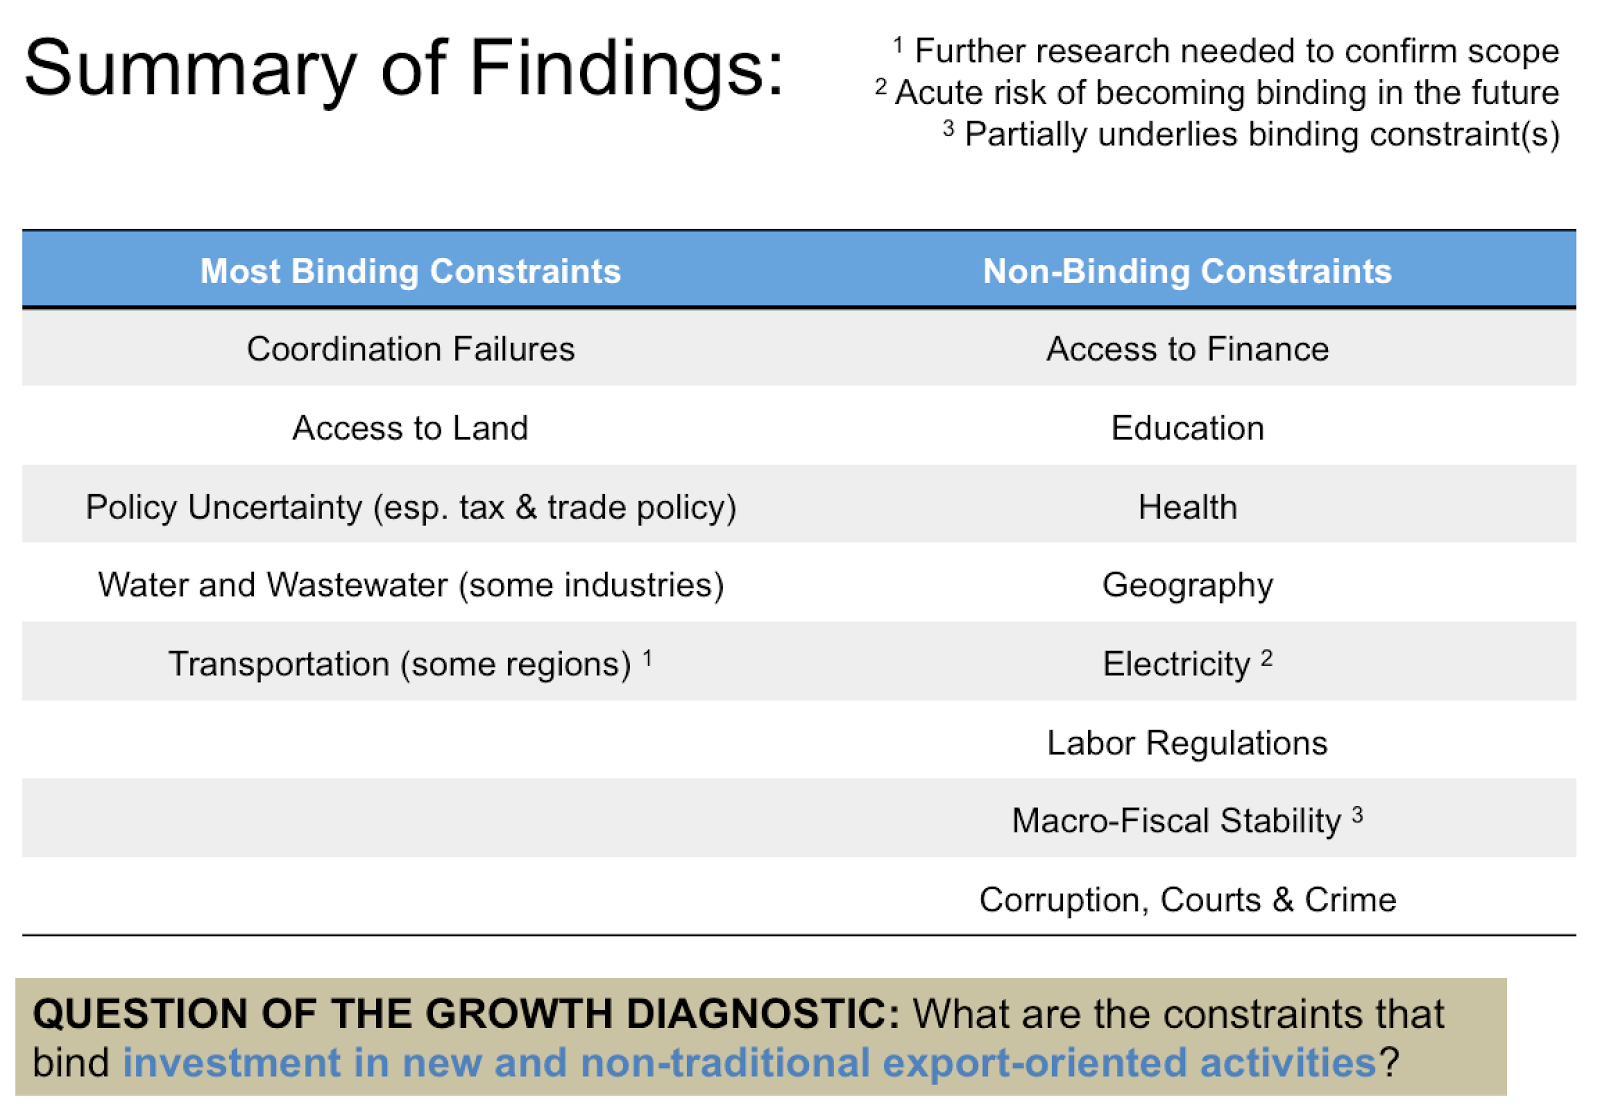 Sri Lanka Growth Diagnostic Summary of Findings